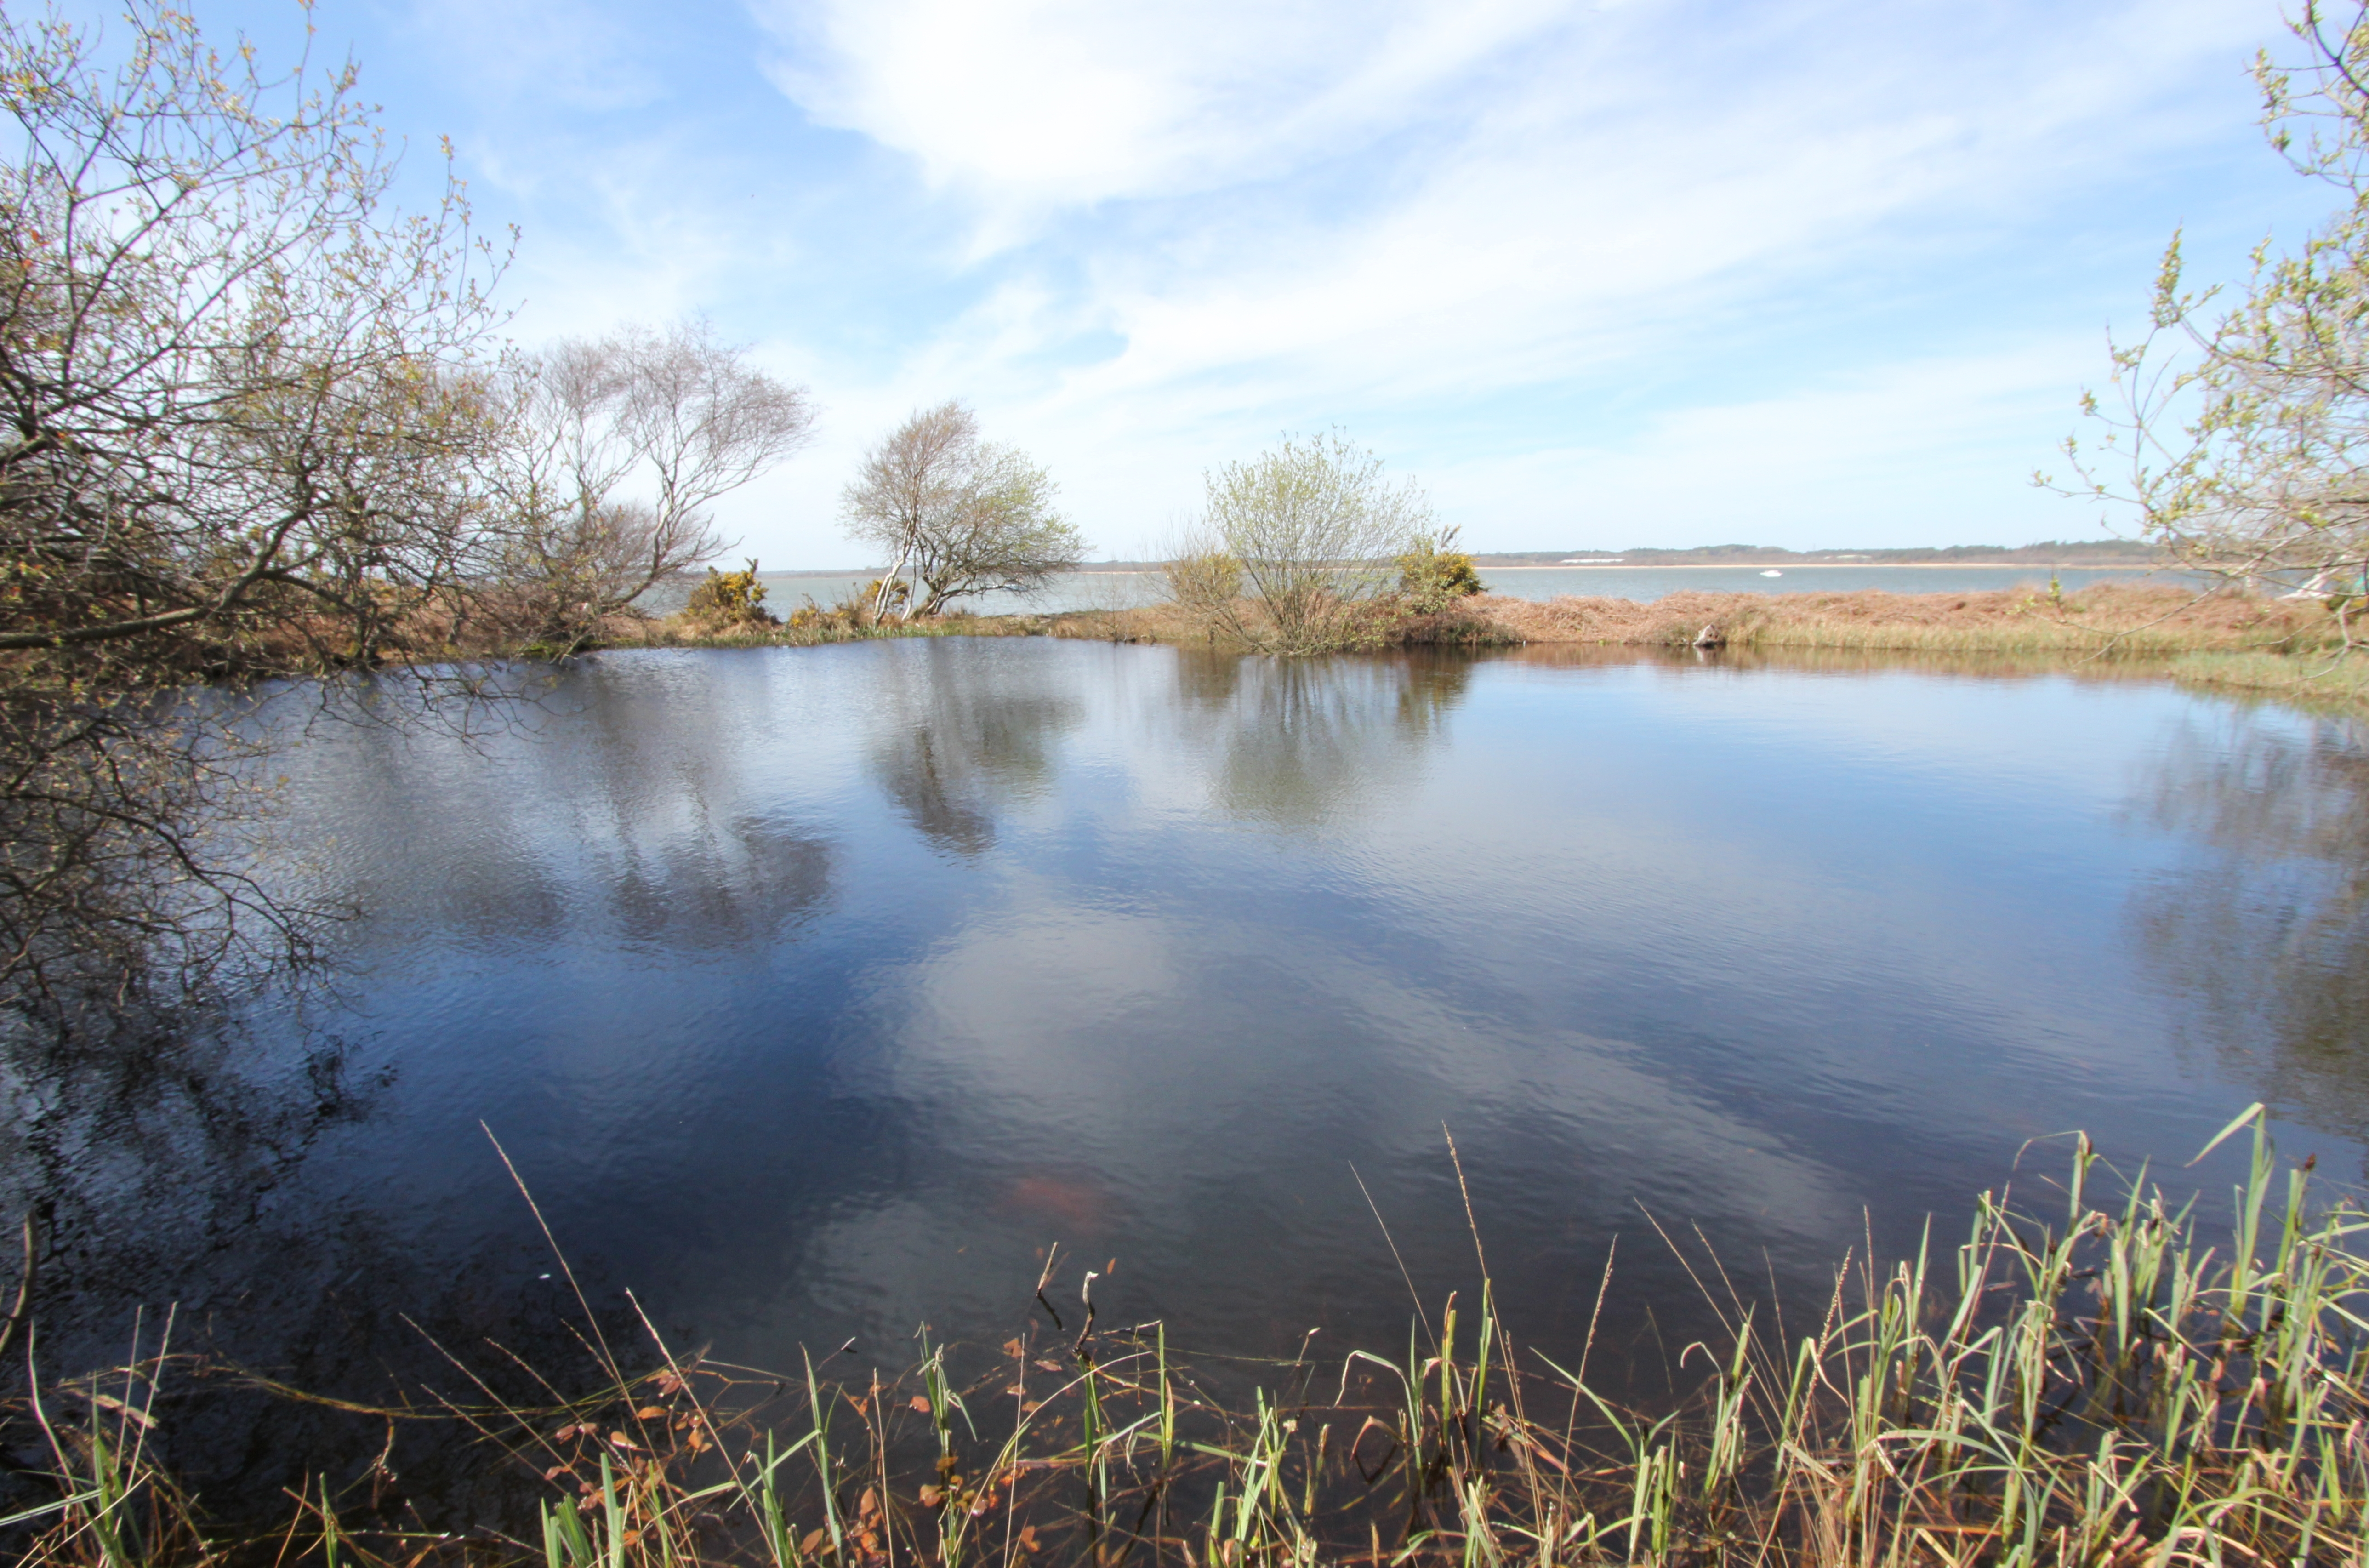 …while from the back of the larger water body to the south there is almost the appearance of it having been created as an 'infinity' pool overlooking the Wareham Channel.